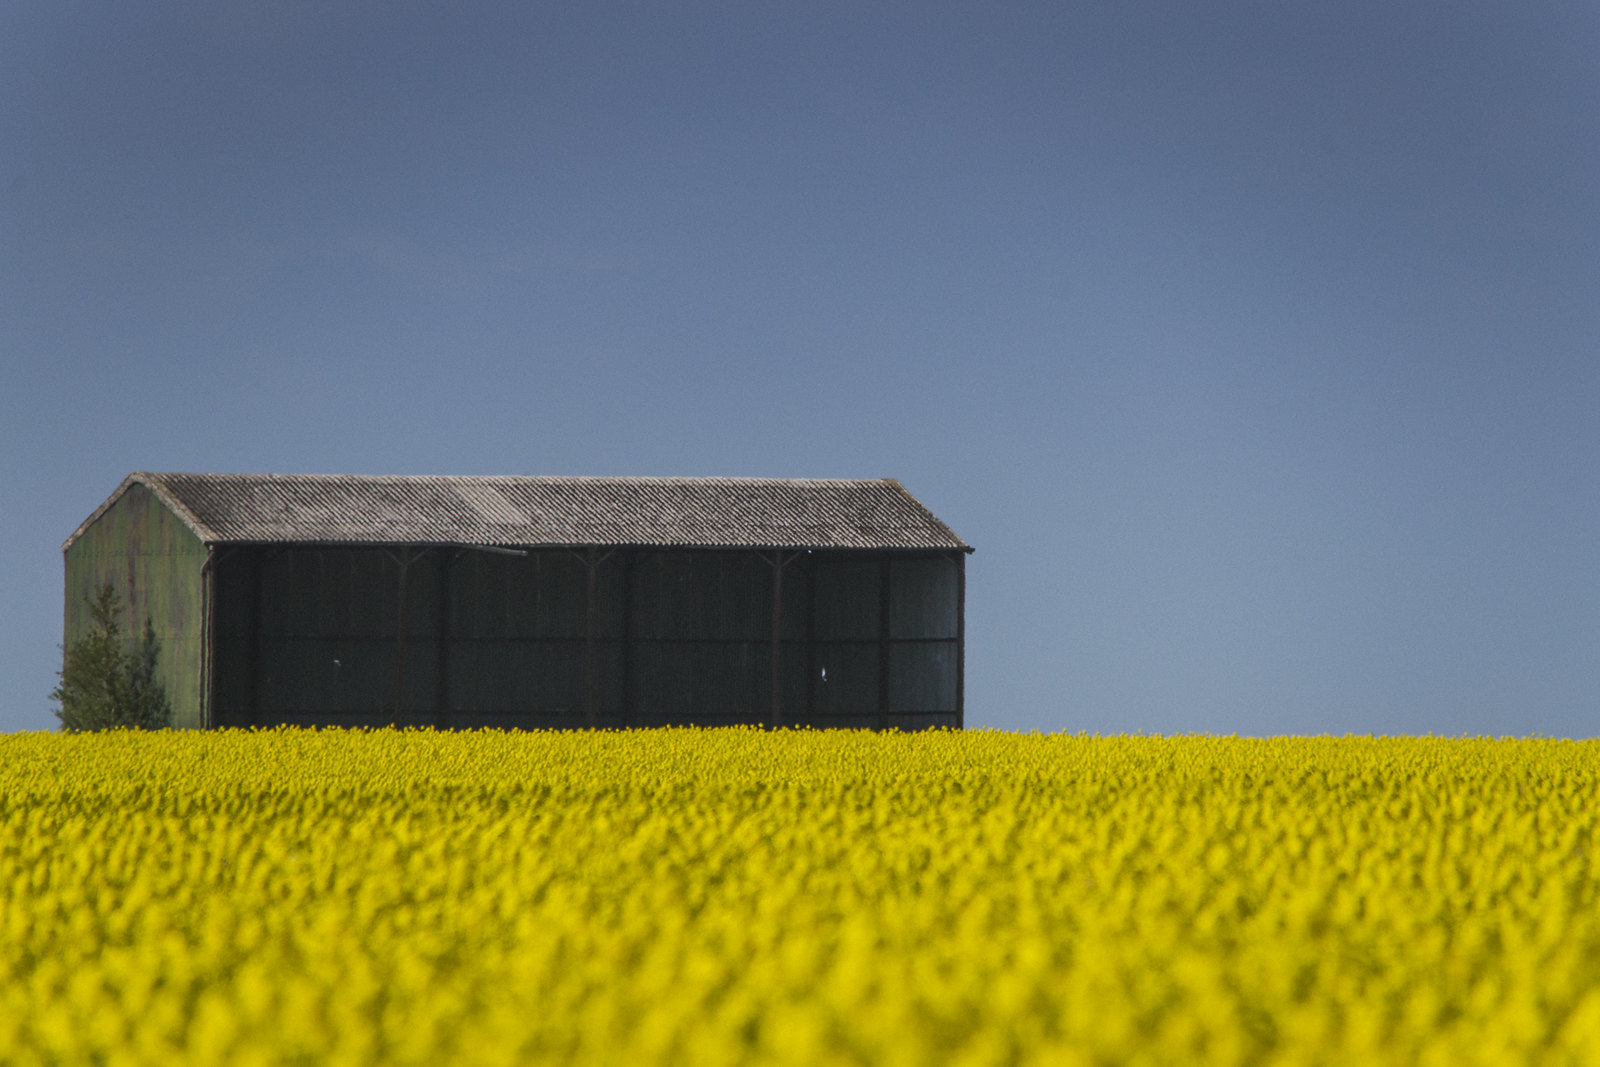 A barn stands on a ridge above oil seed rape